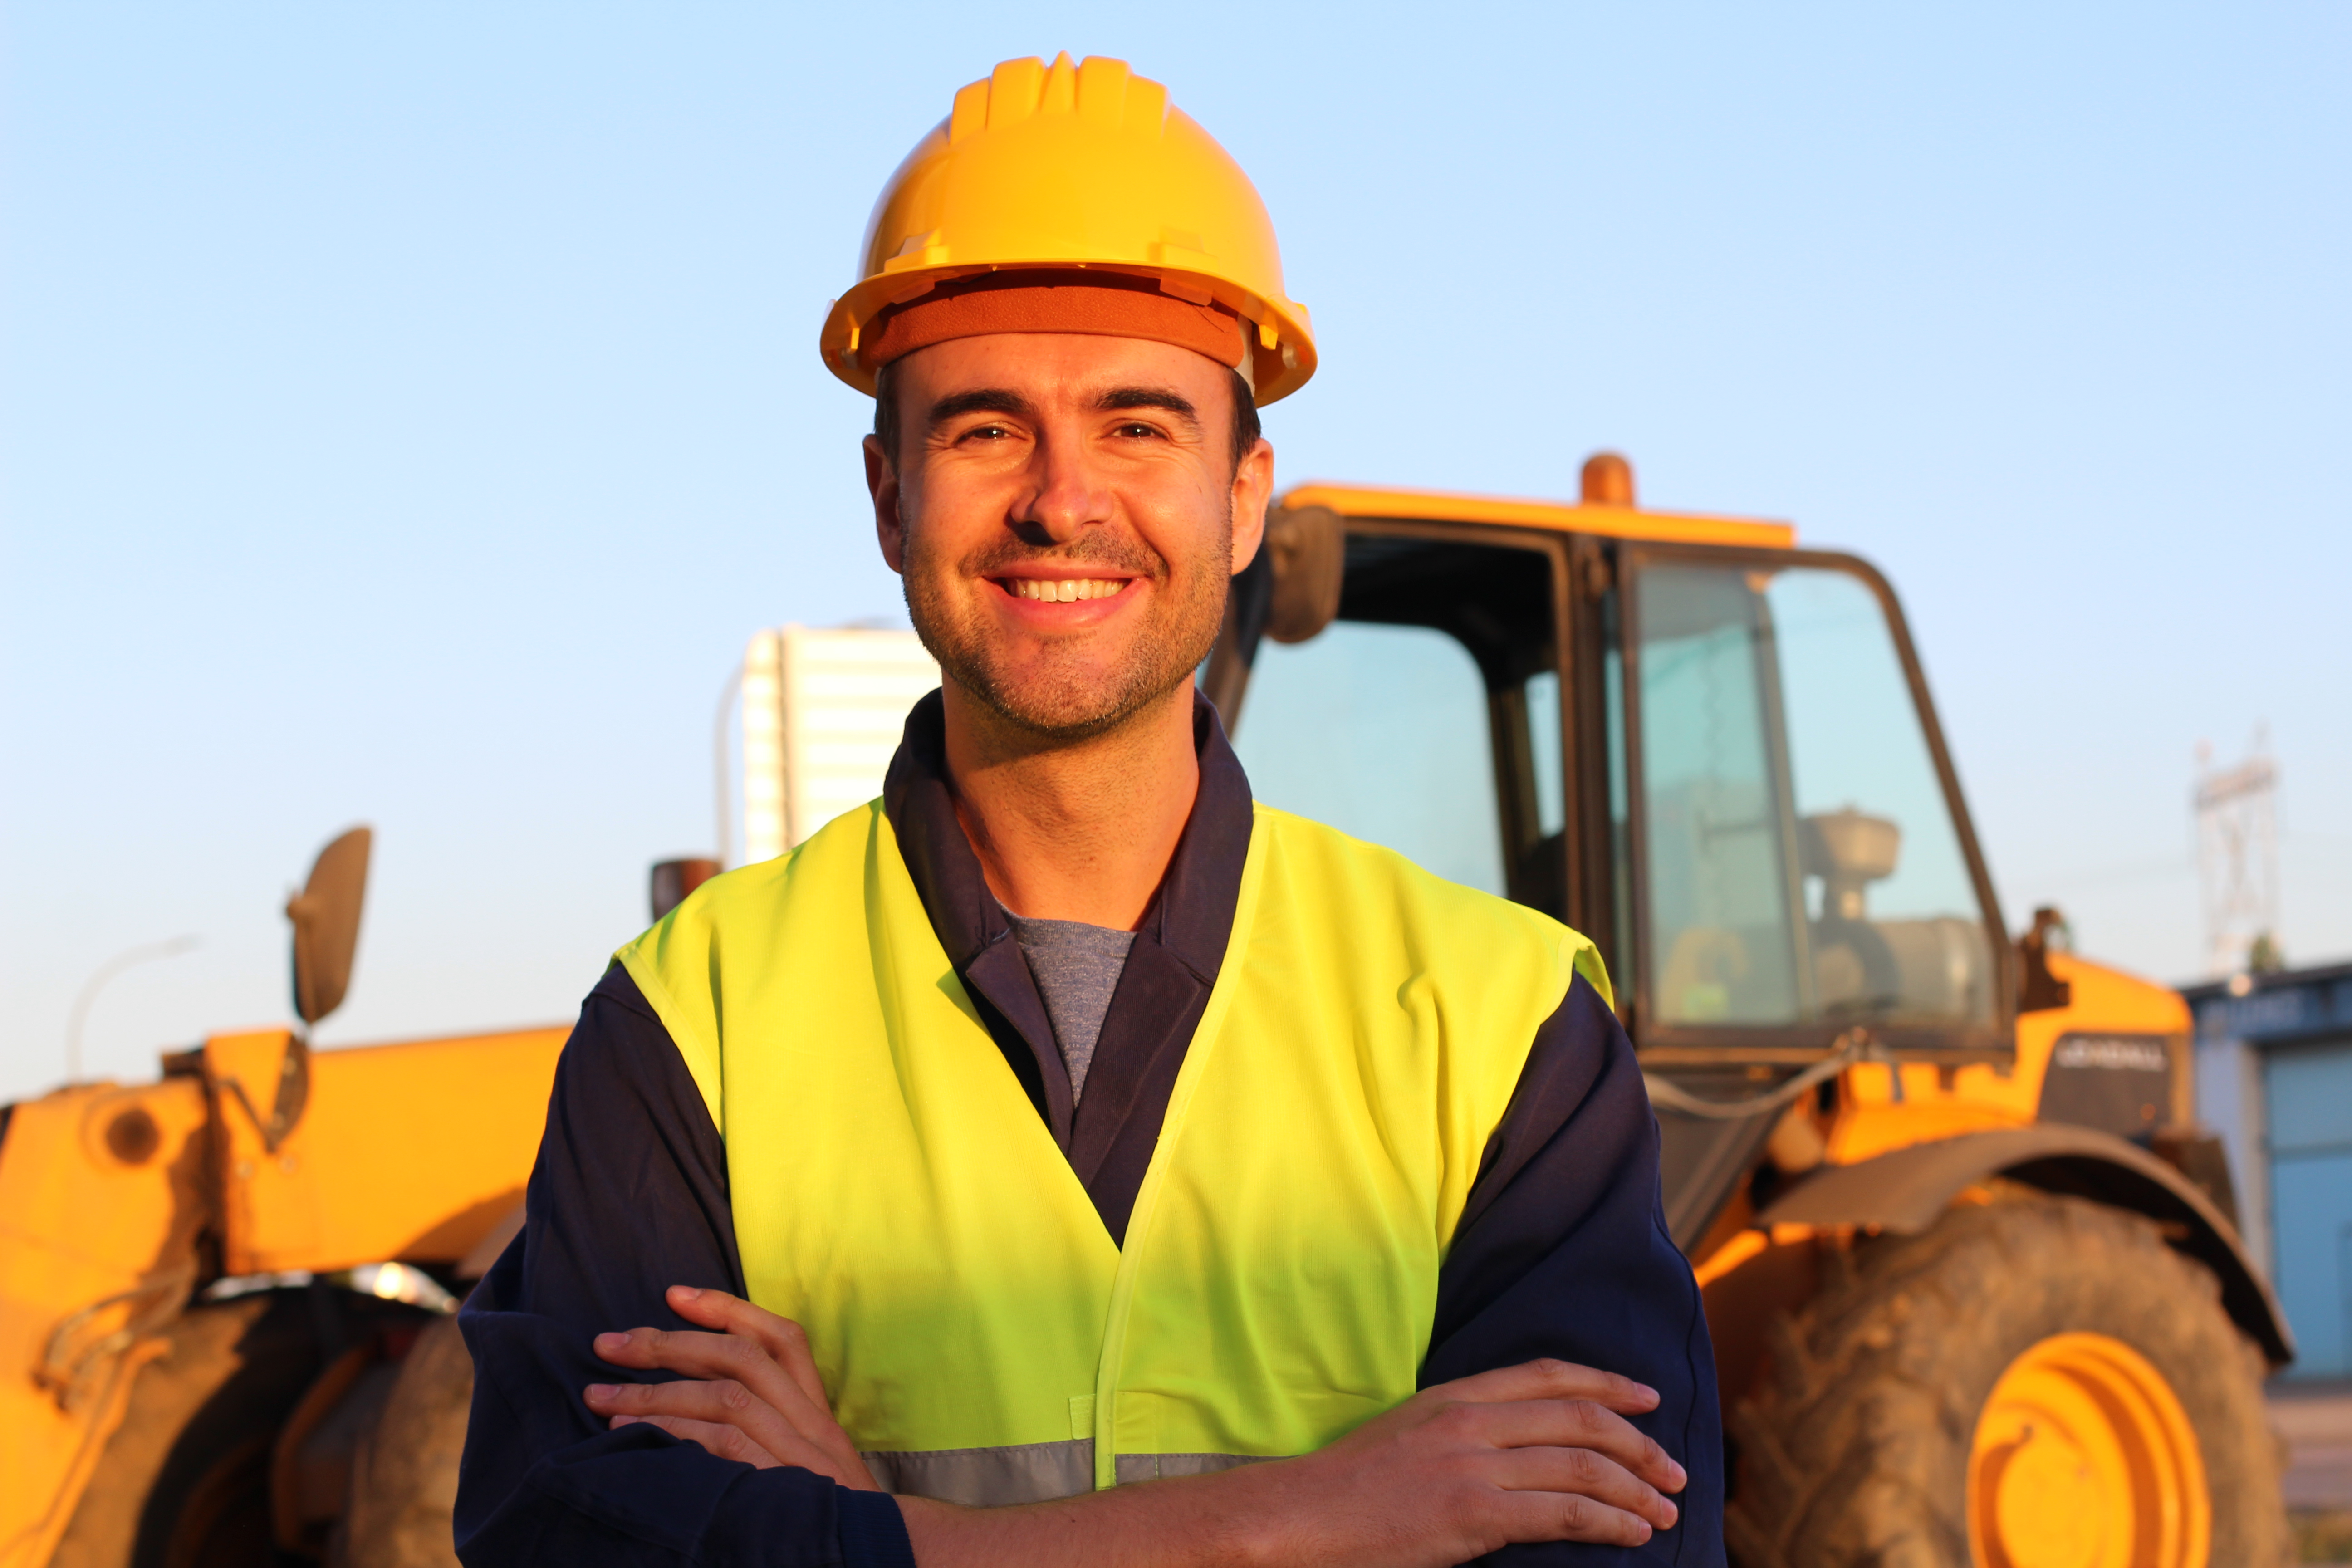 Construction driver with excavator on the background.